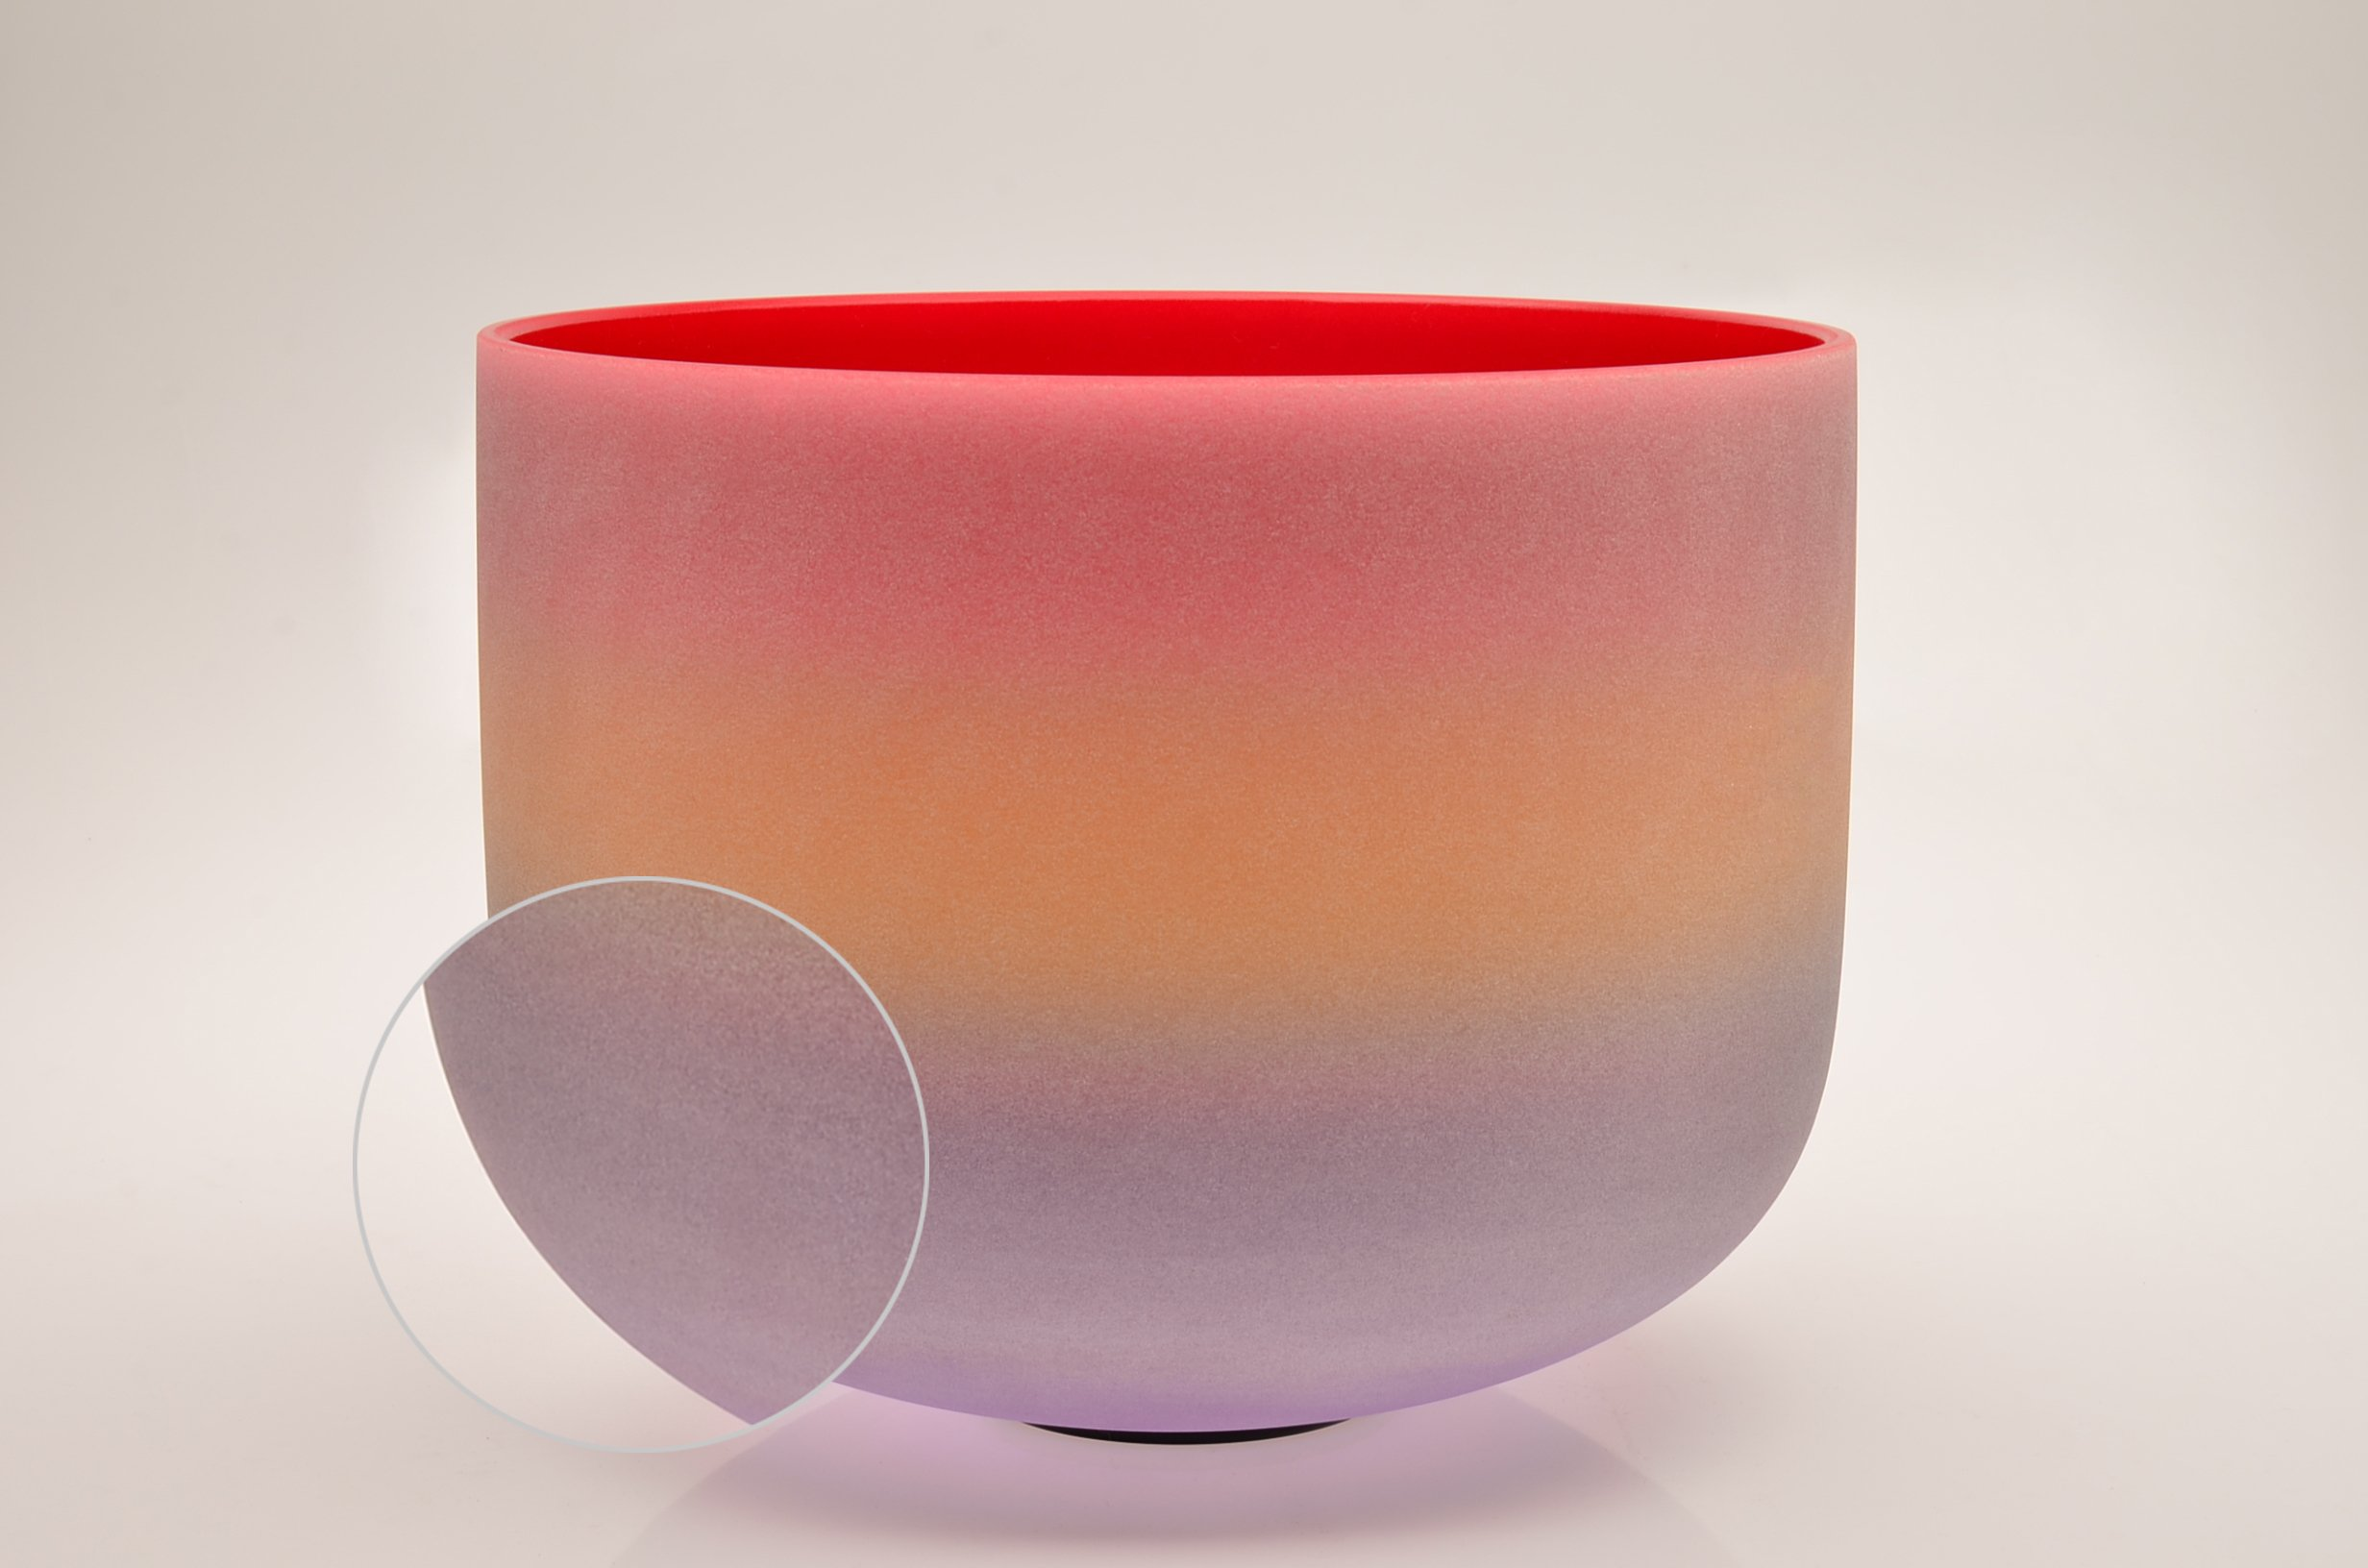 TOPFUND Singing Bowls C Note Crystal Singing Bowl Root Chakra Rainbow Color 12 inch (O-Ring and Rubber Mallet Included) by TOPFUND (Image #4)